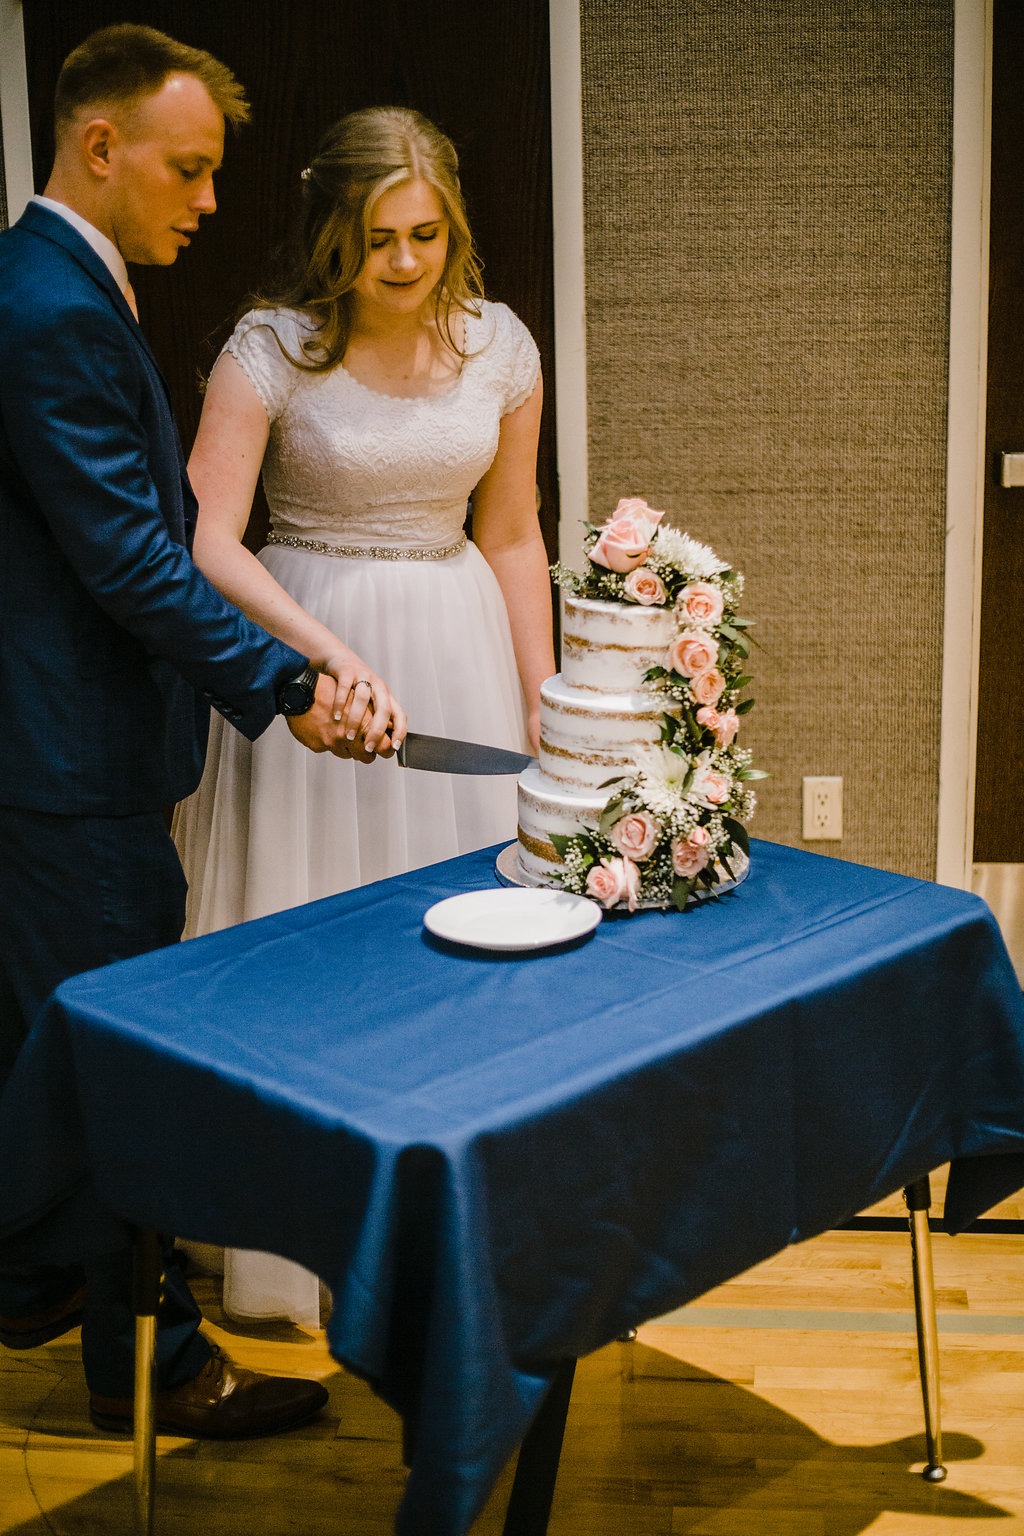 calli richards is a professional wedding photographer based in cache valley utah capture the cutting the cake moment lds wedding photography